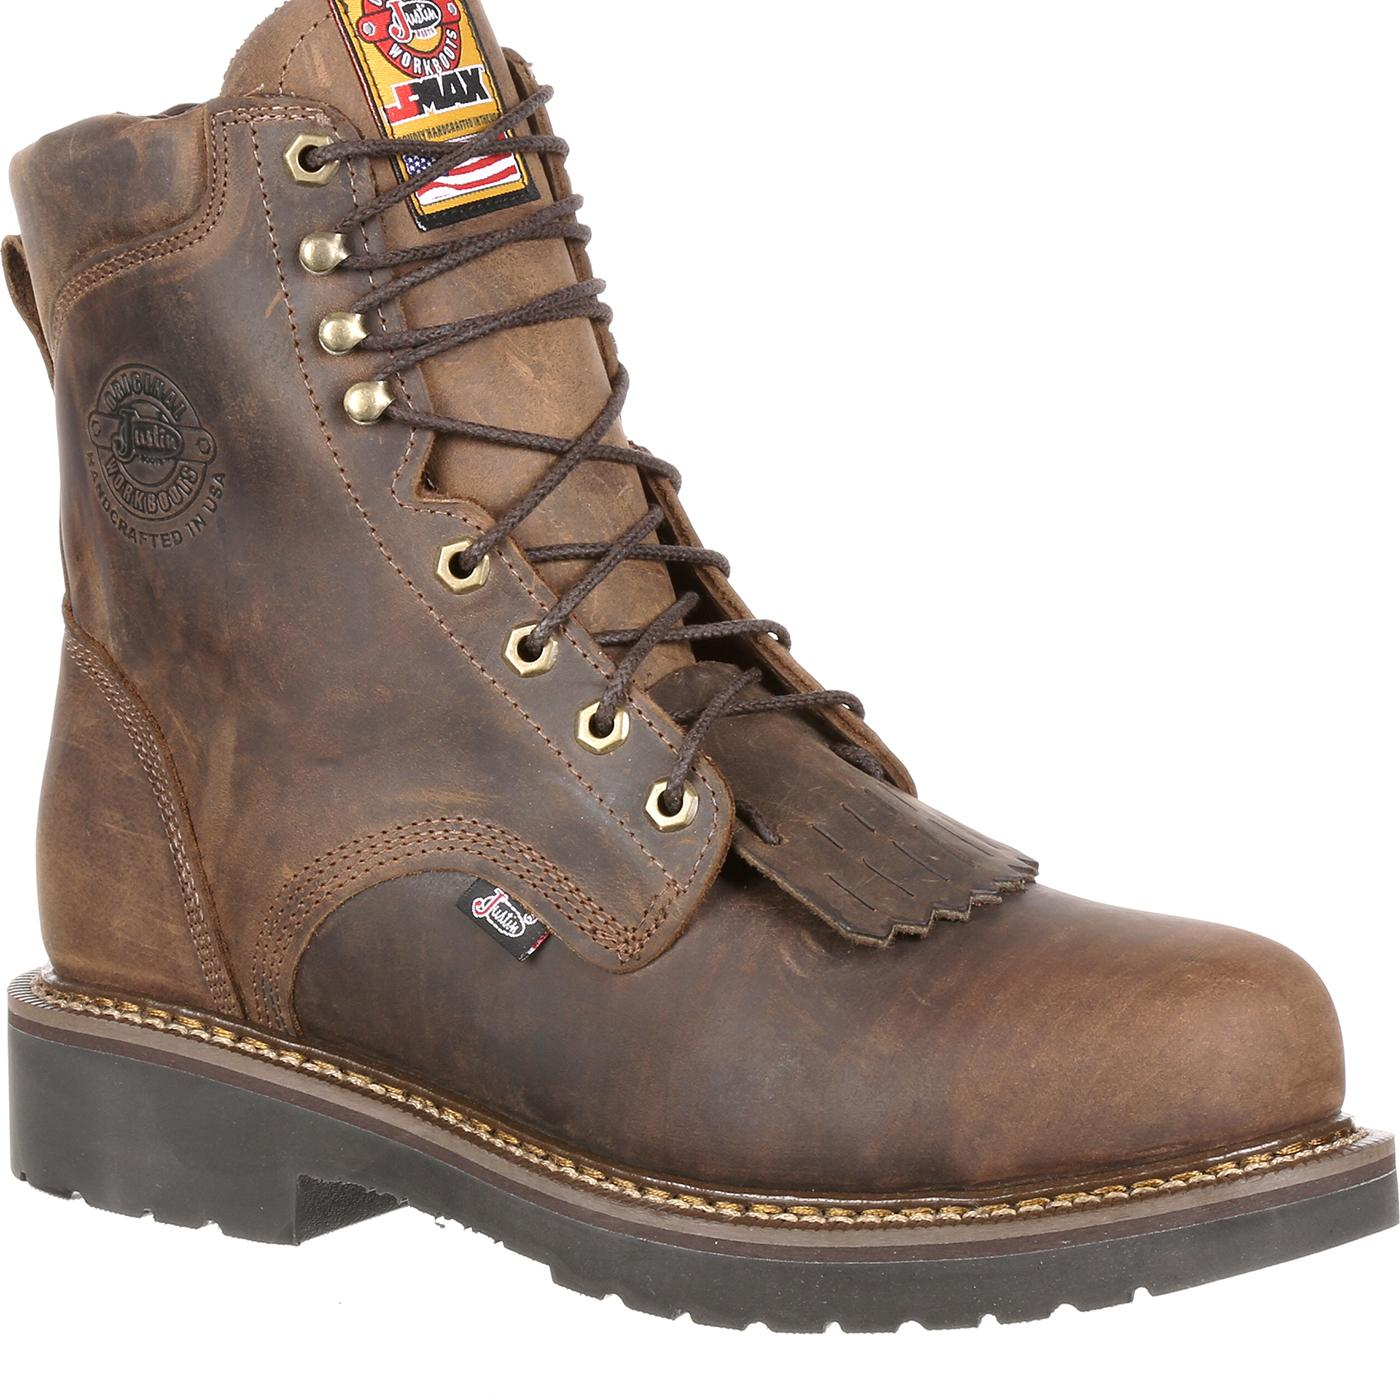 1da72fb2a19 Justin Work Steel Toe CSA-Approved Puncture-Resistant Work Boot